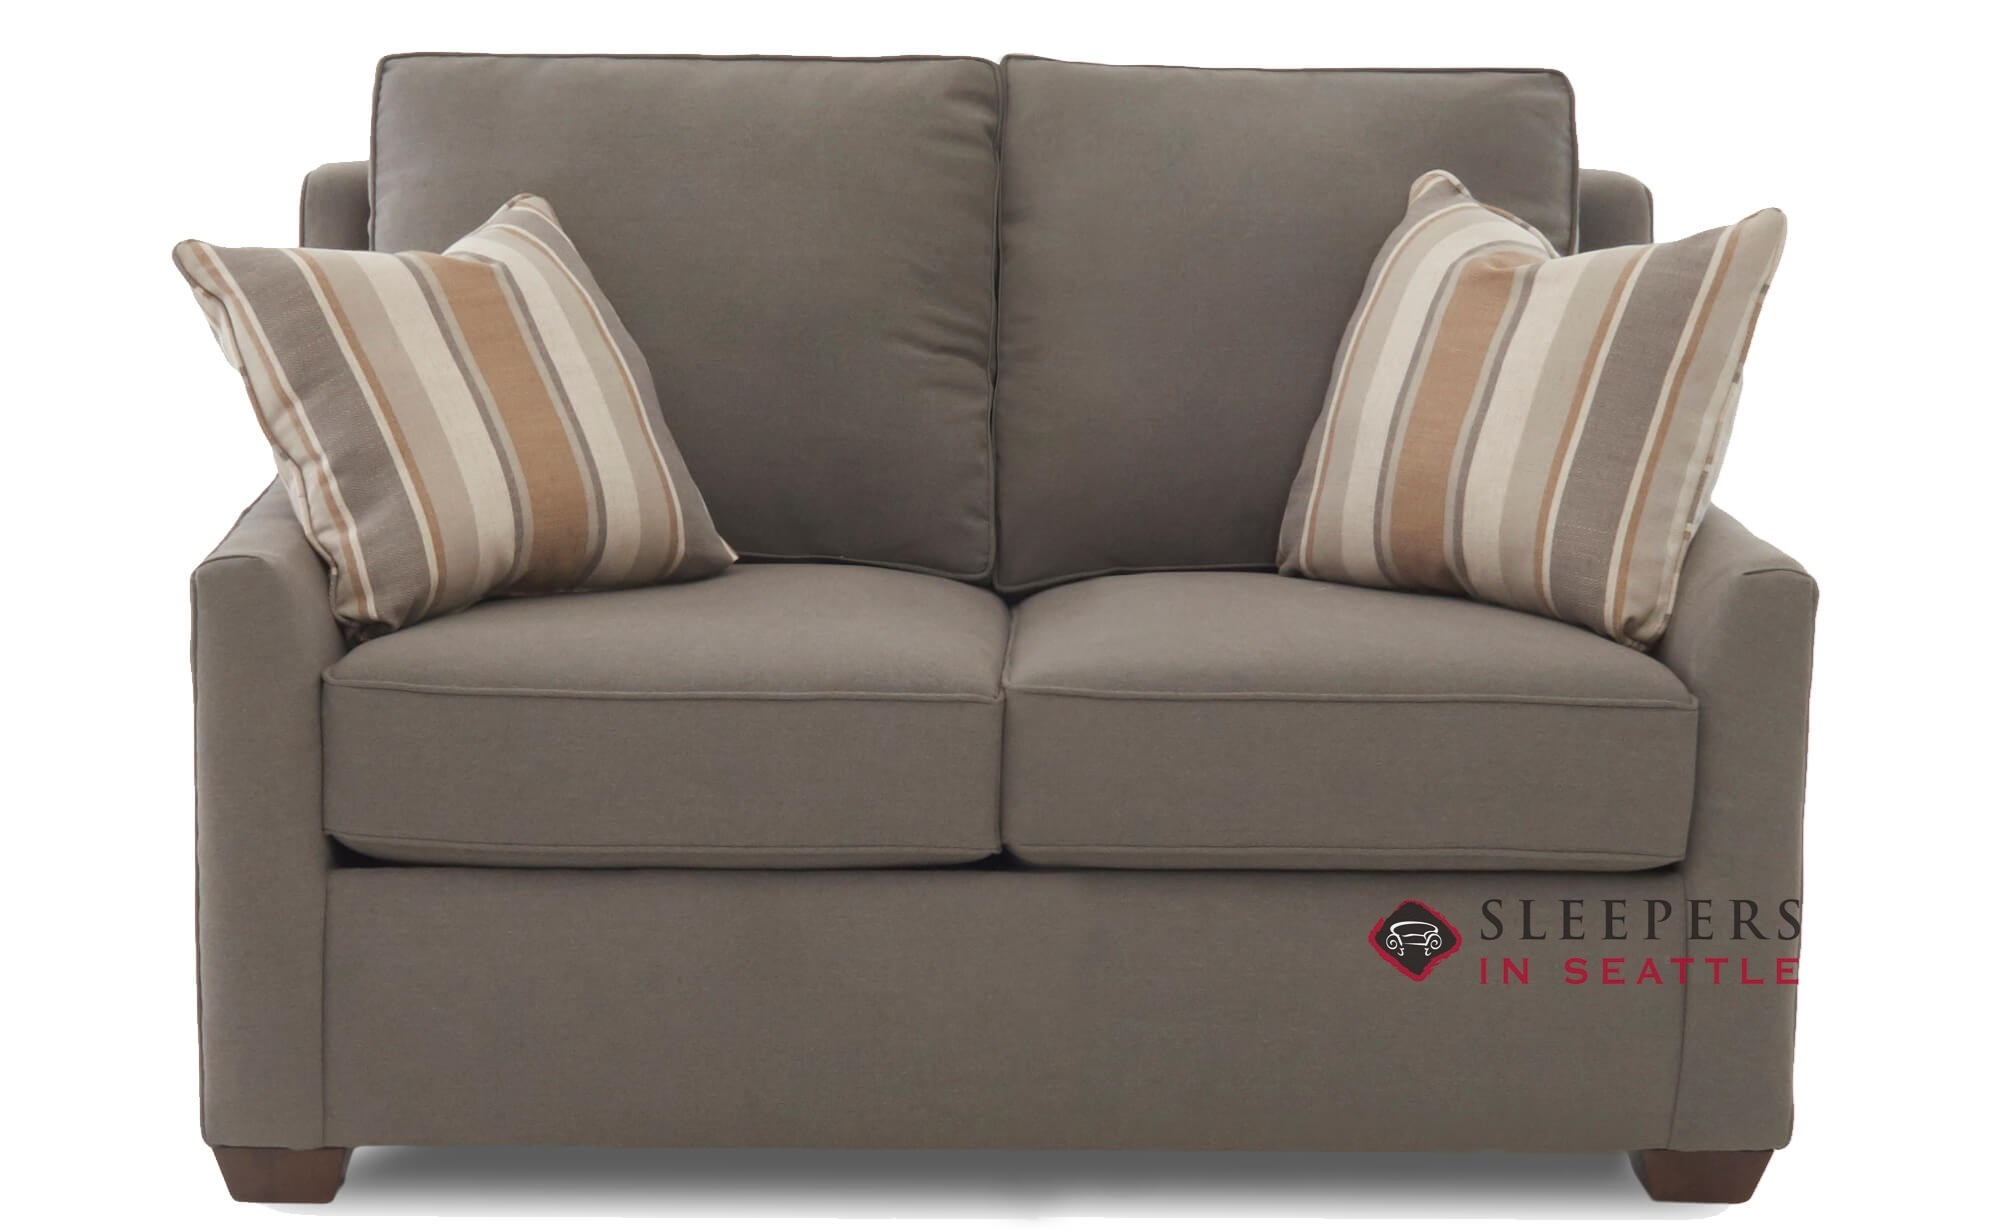 Customize And Personalize Fairfield By Savvy Twin Fabric Sofa By Savvy Twin Size Sofa Bed Sleepersinseattle Com